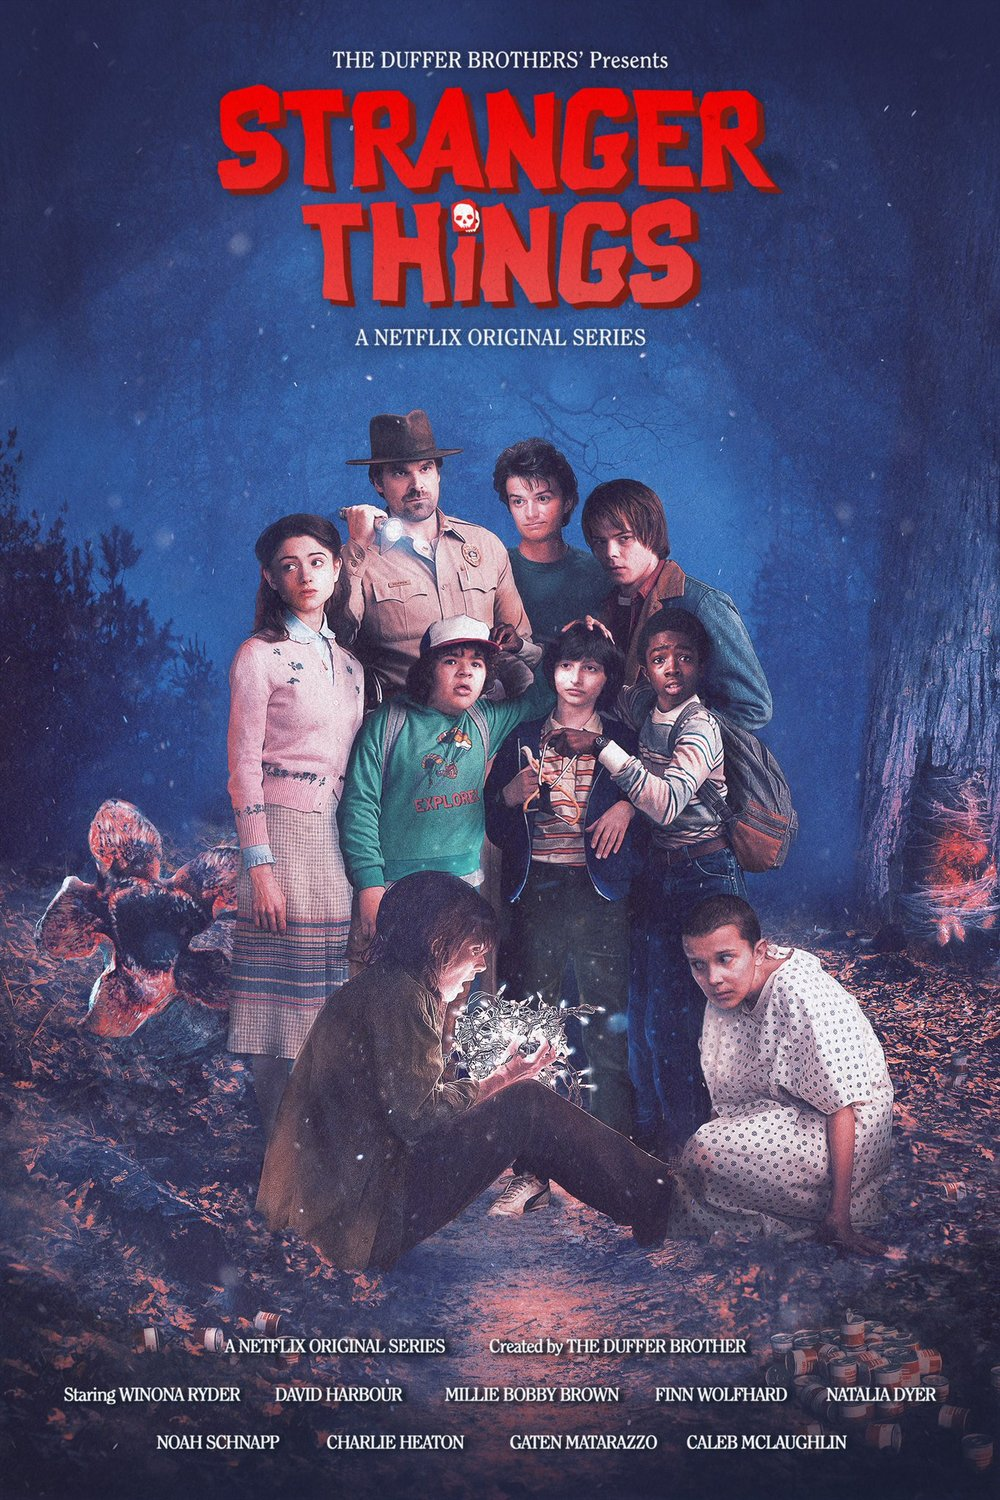 DKPkvwRUQAA0ZtD.jpgnew-stranger-things-poster-is-inspired-by-the-goonies11